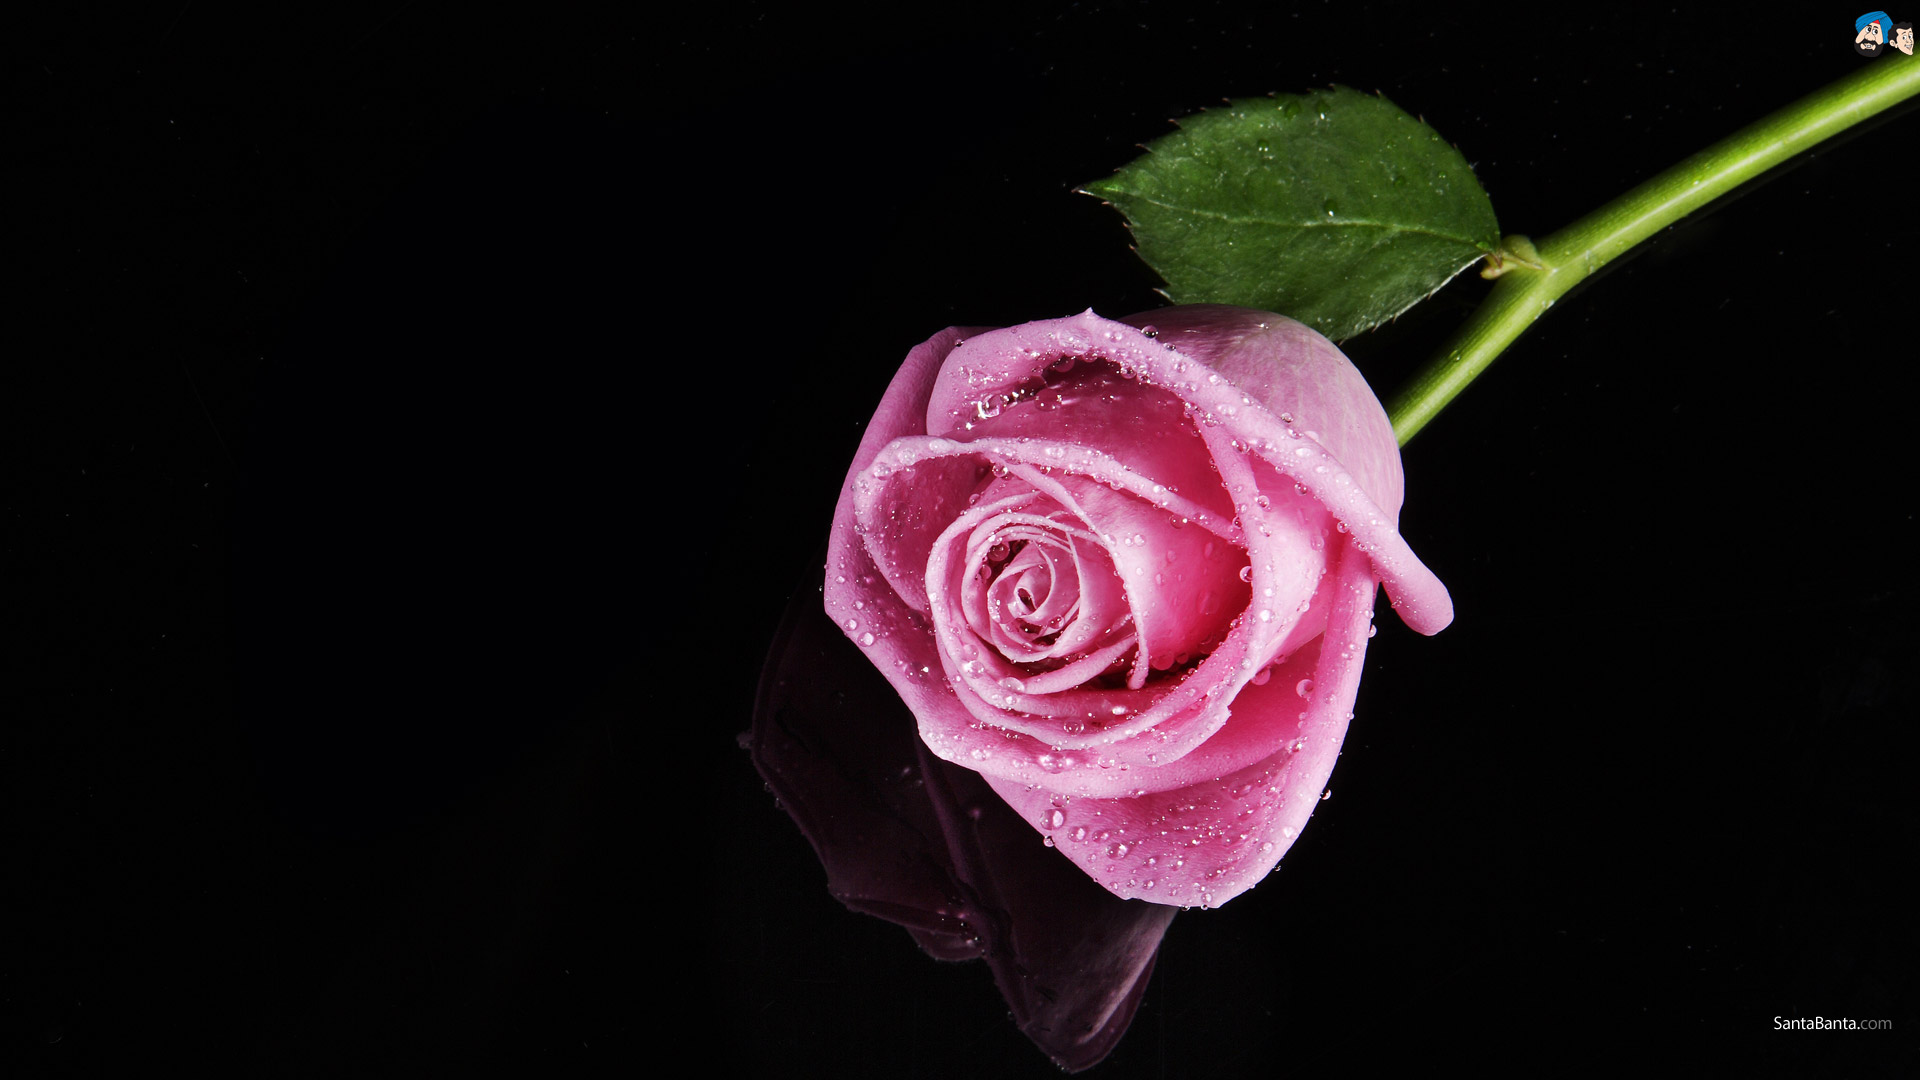 Free pink rose with raindrops wallpaper 2 cool hd wallpaper free pink rose with raindrops wallpaper free wallpaper altavistaventures